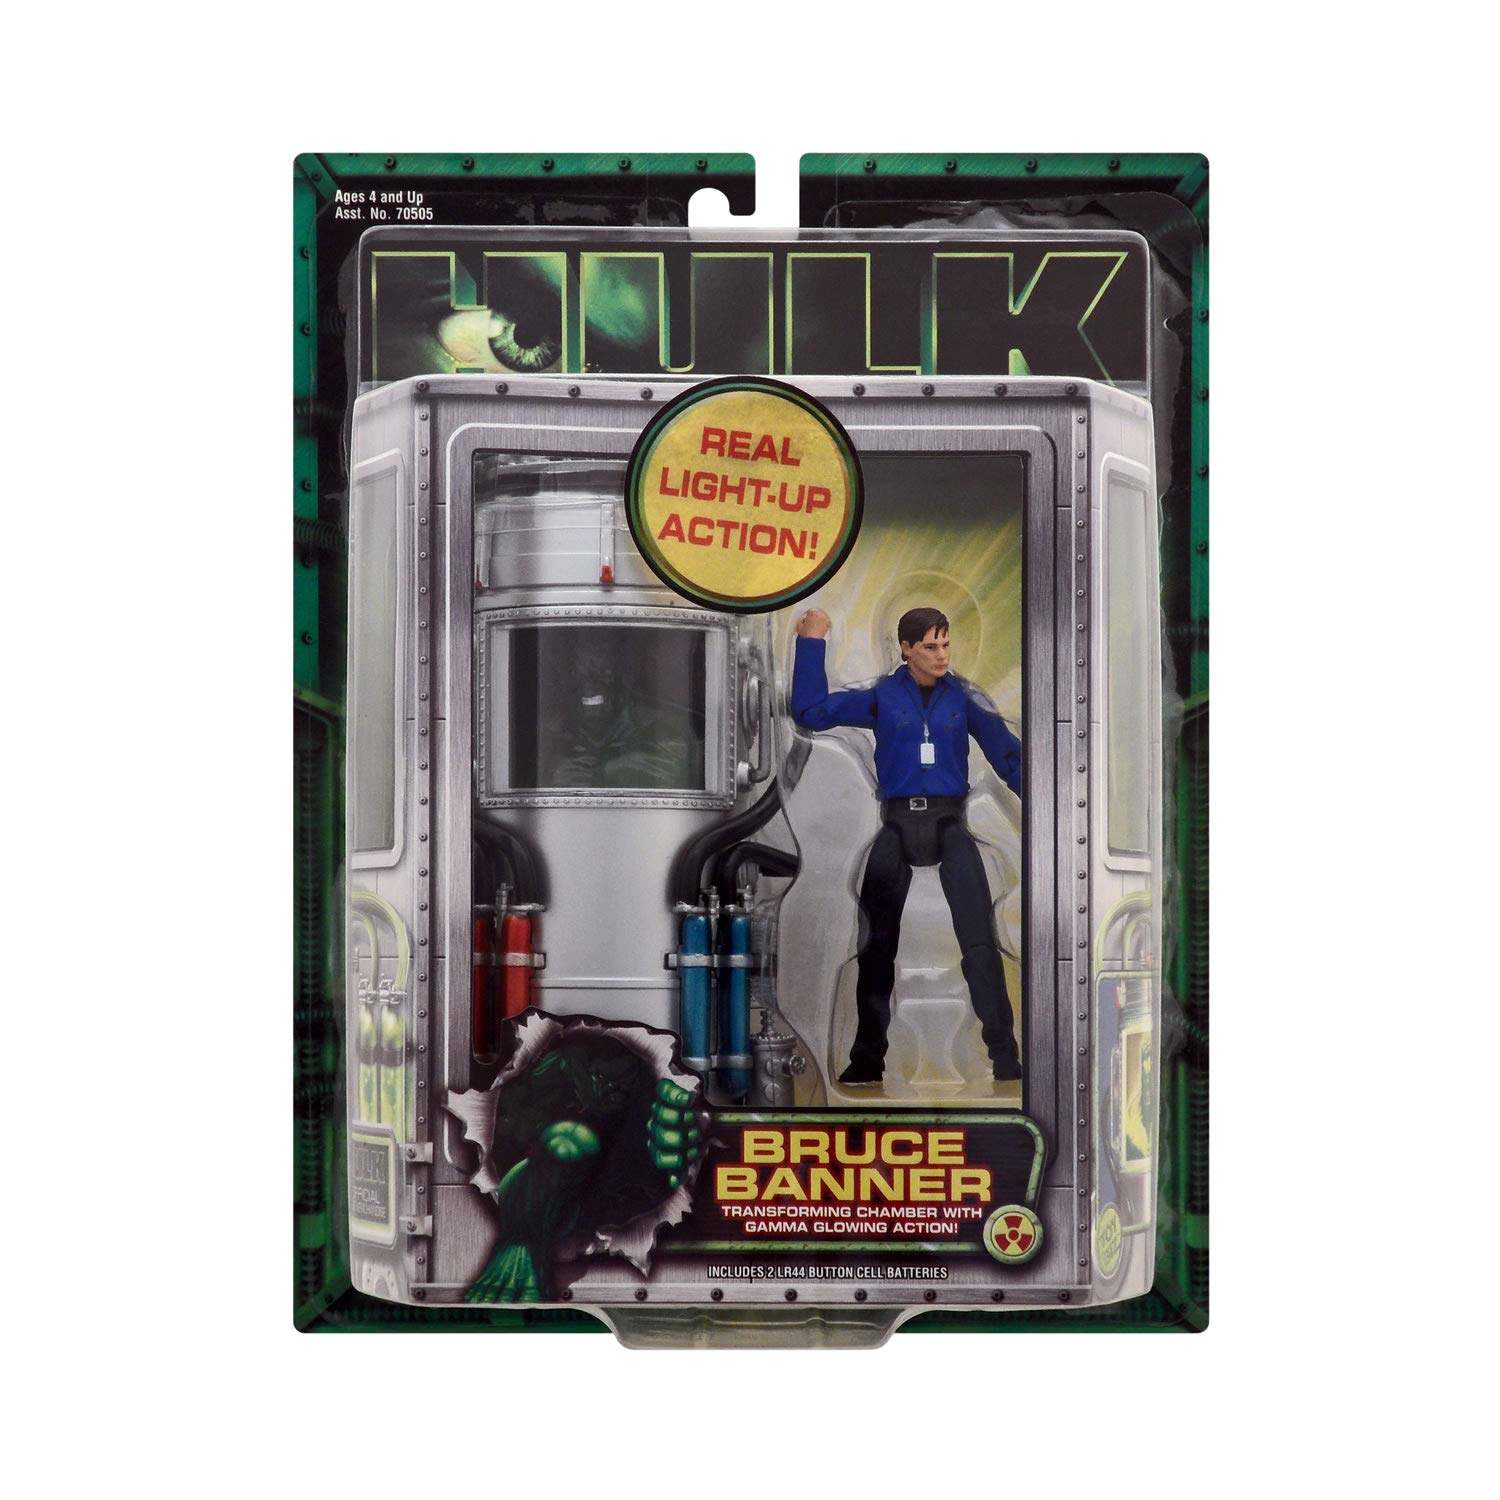 Hulk, Bruce Banner, Transforming Chamber with Gamma Glowing Action